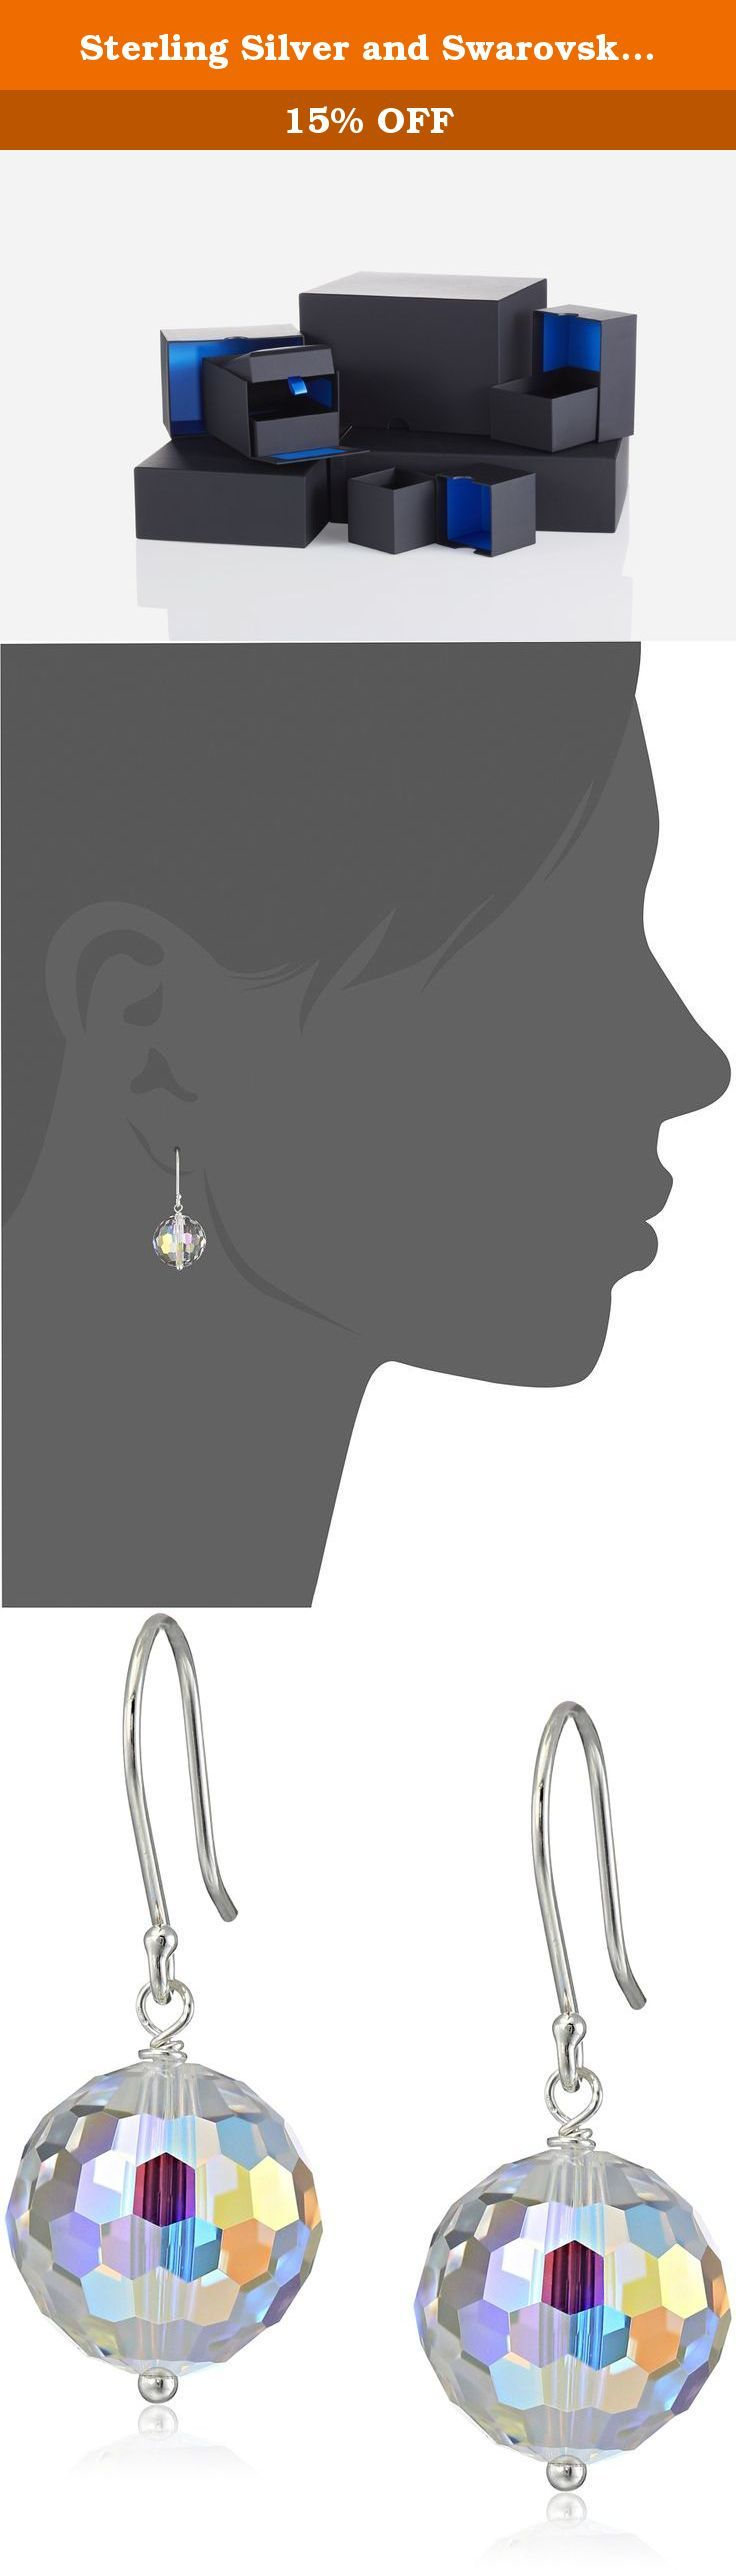 Sterling Silver and Swarovski Elements Crystal Aurora Borealis Drop Earrings. The Swarovski Elements Crystal Round Drop Earrings will make you want to go out dancing every night. The clear round faceted crystal beads feature a rainbow aurora borealis coating for ultimate colorful glitter. Measuring 12 millimeters across, the beads make bold yet graceful earrings with a modest 1.25-inch drop and a retro disco-ball effect. They hang from 925 sterling silver fishhook ear wires that…